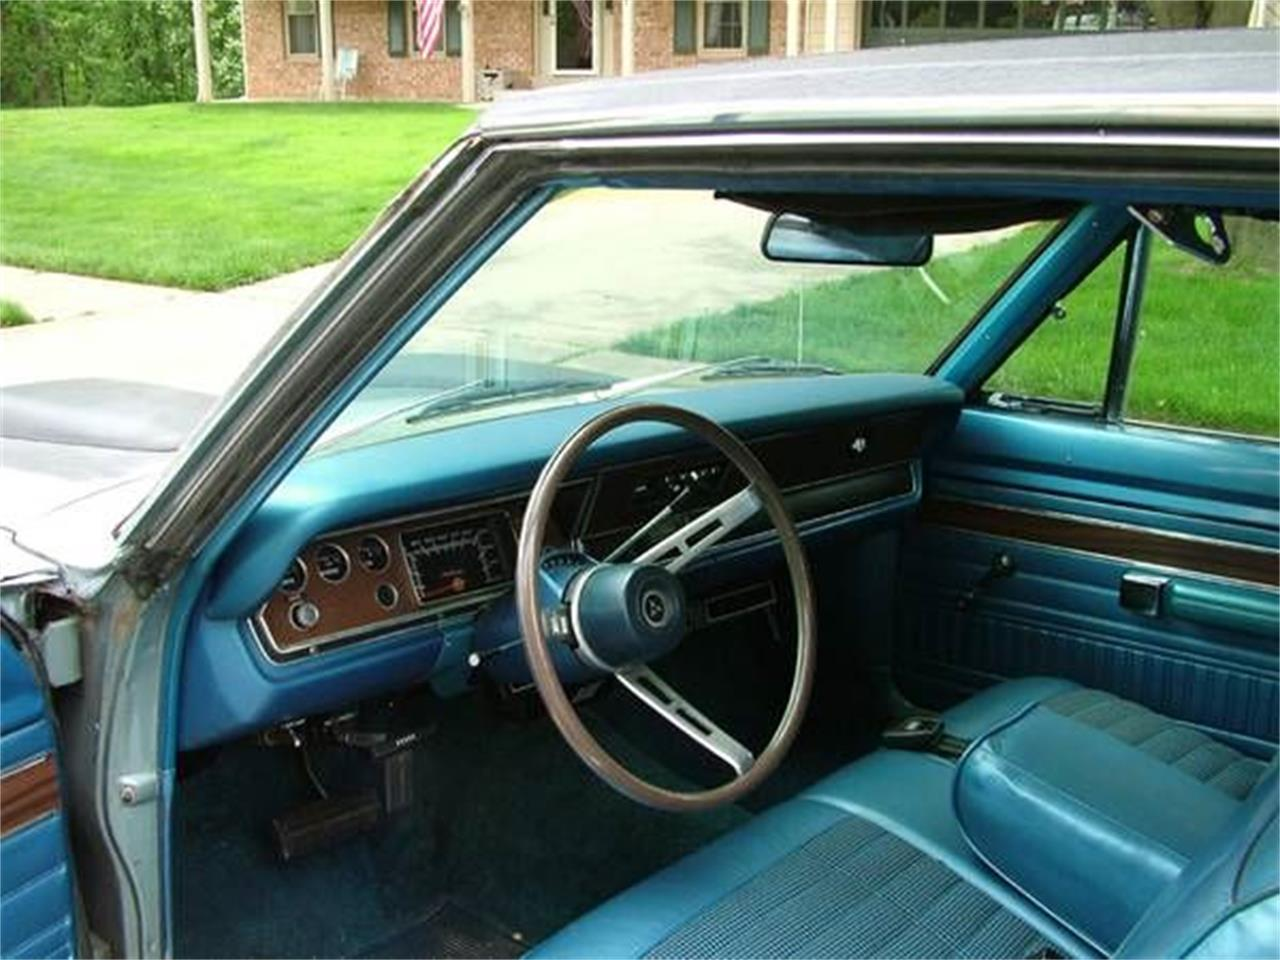 Large Picture of 1972 Dodge Dart - $22,495.00 Offered by Classic Car Deals - NWJS